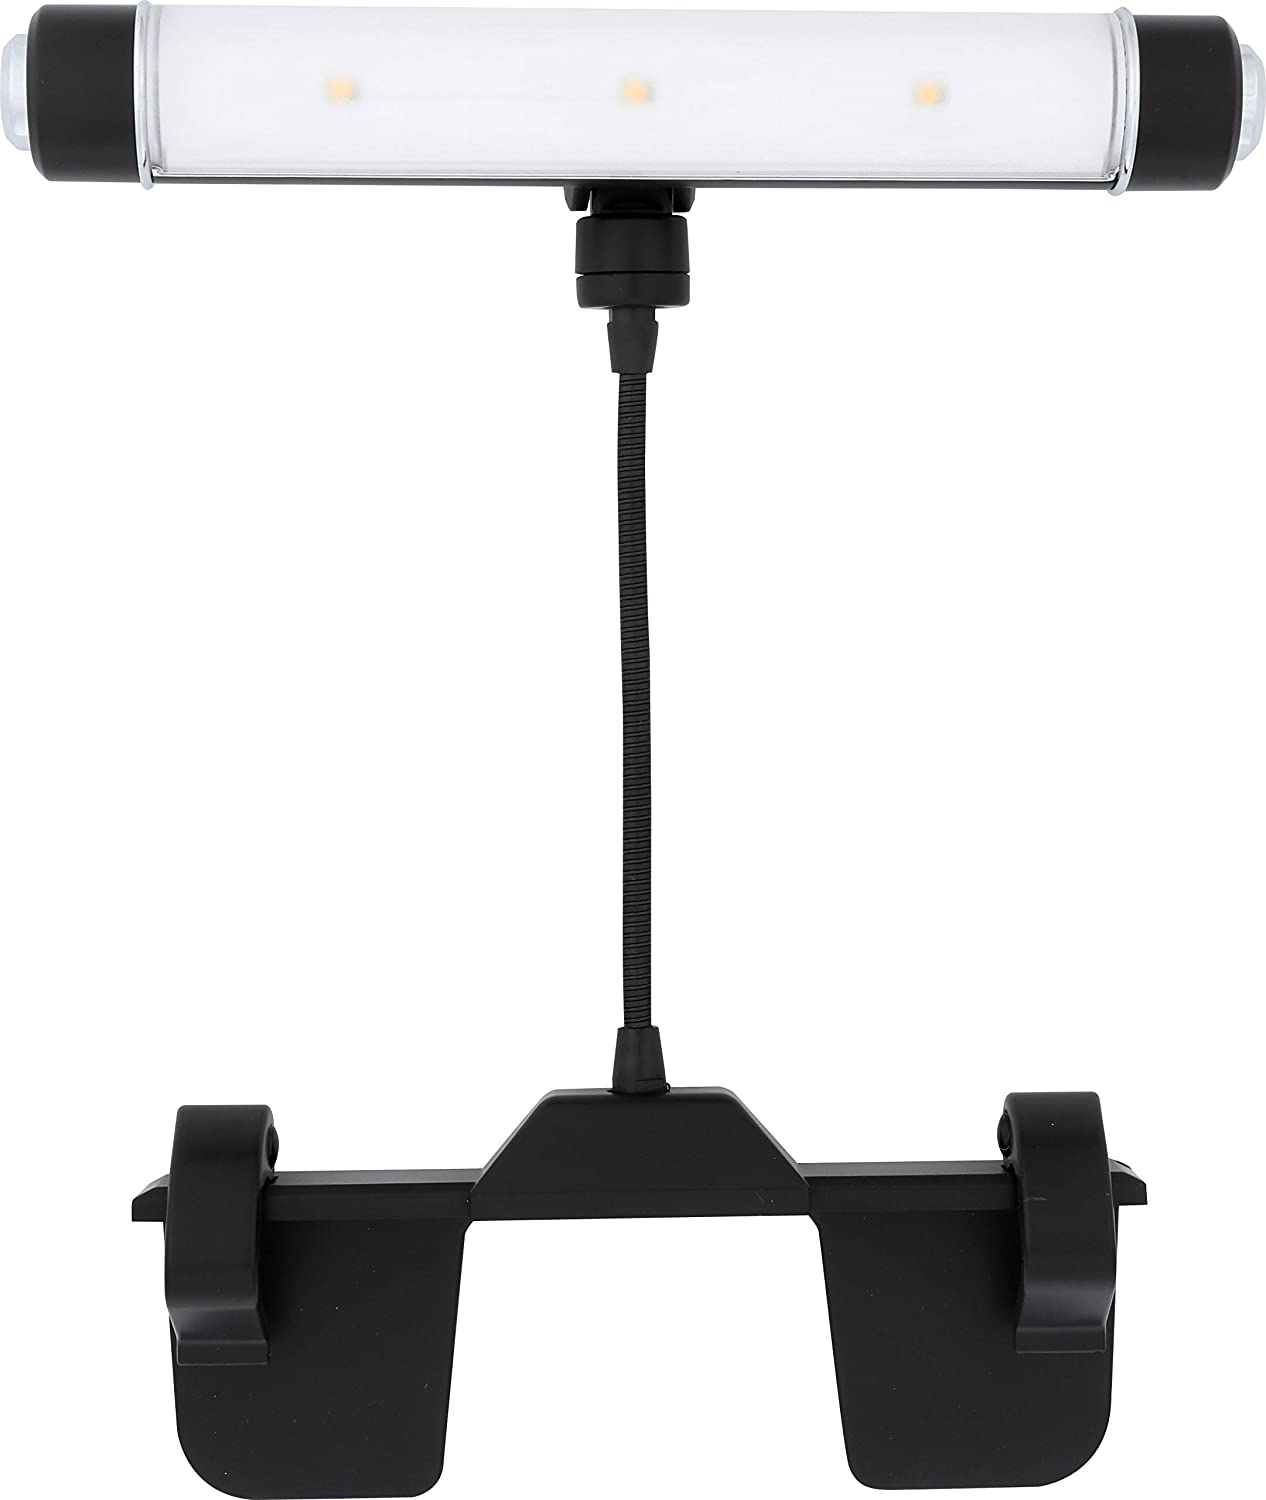 Rite Lite LPL600B battery operated Picture Light